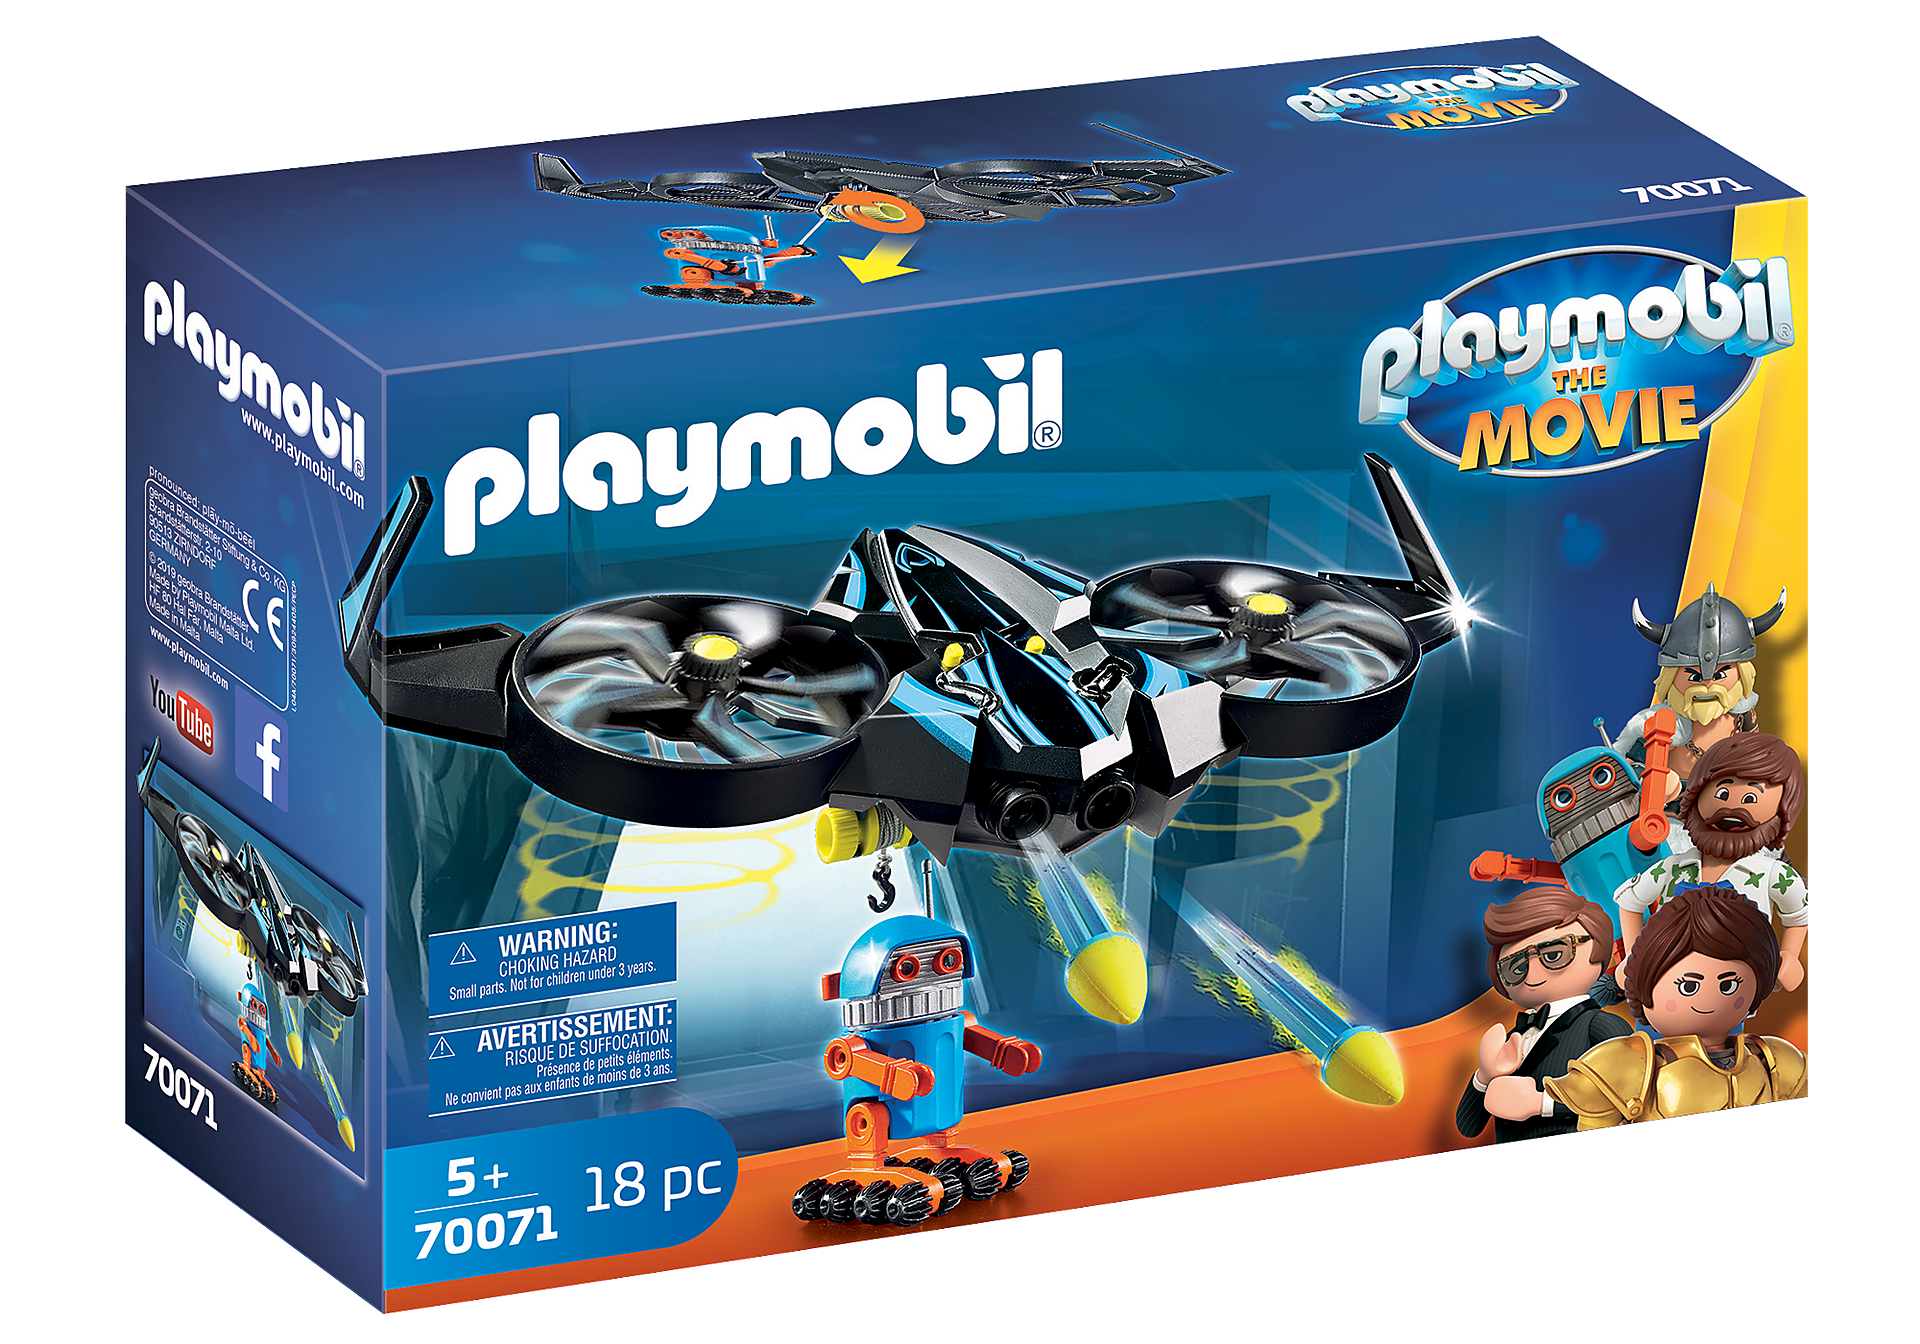 http://media.playmobil.com/i/playmobil/70071_product_box_front/PLAYMOBIL:THE MOVIE Robotitron with Drone